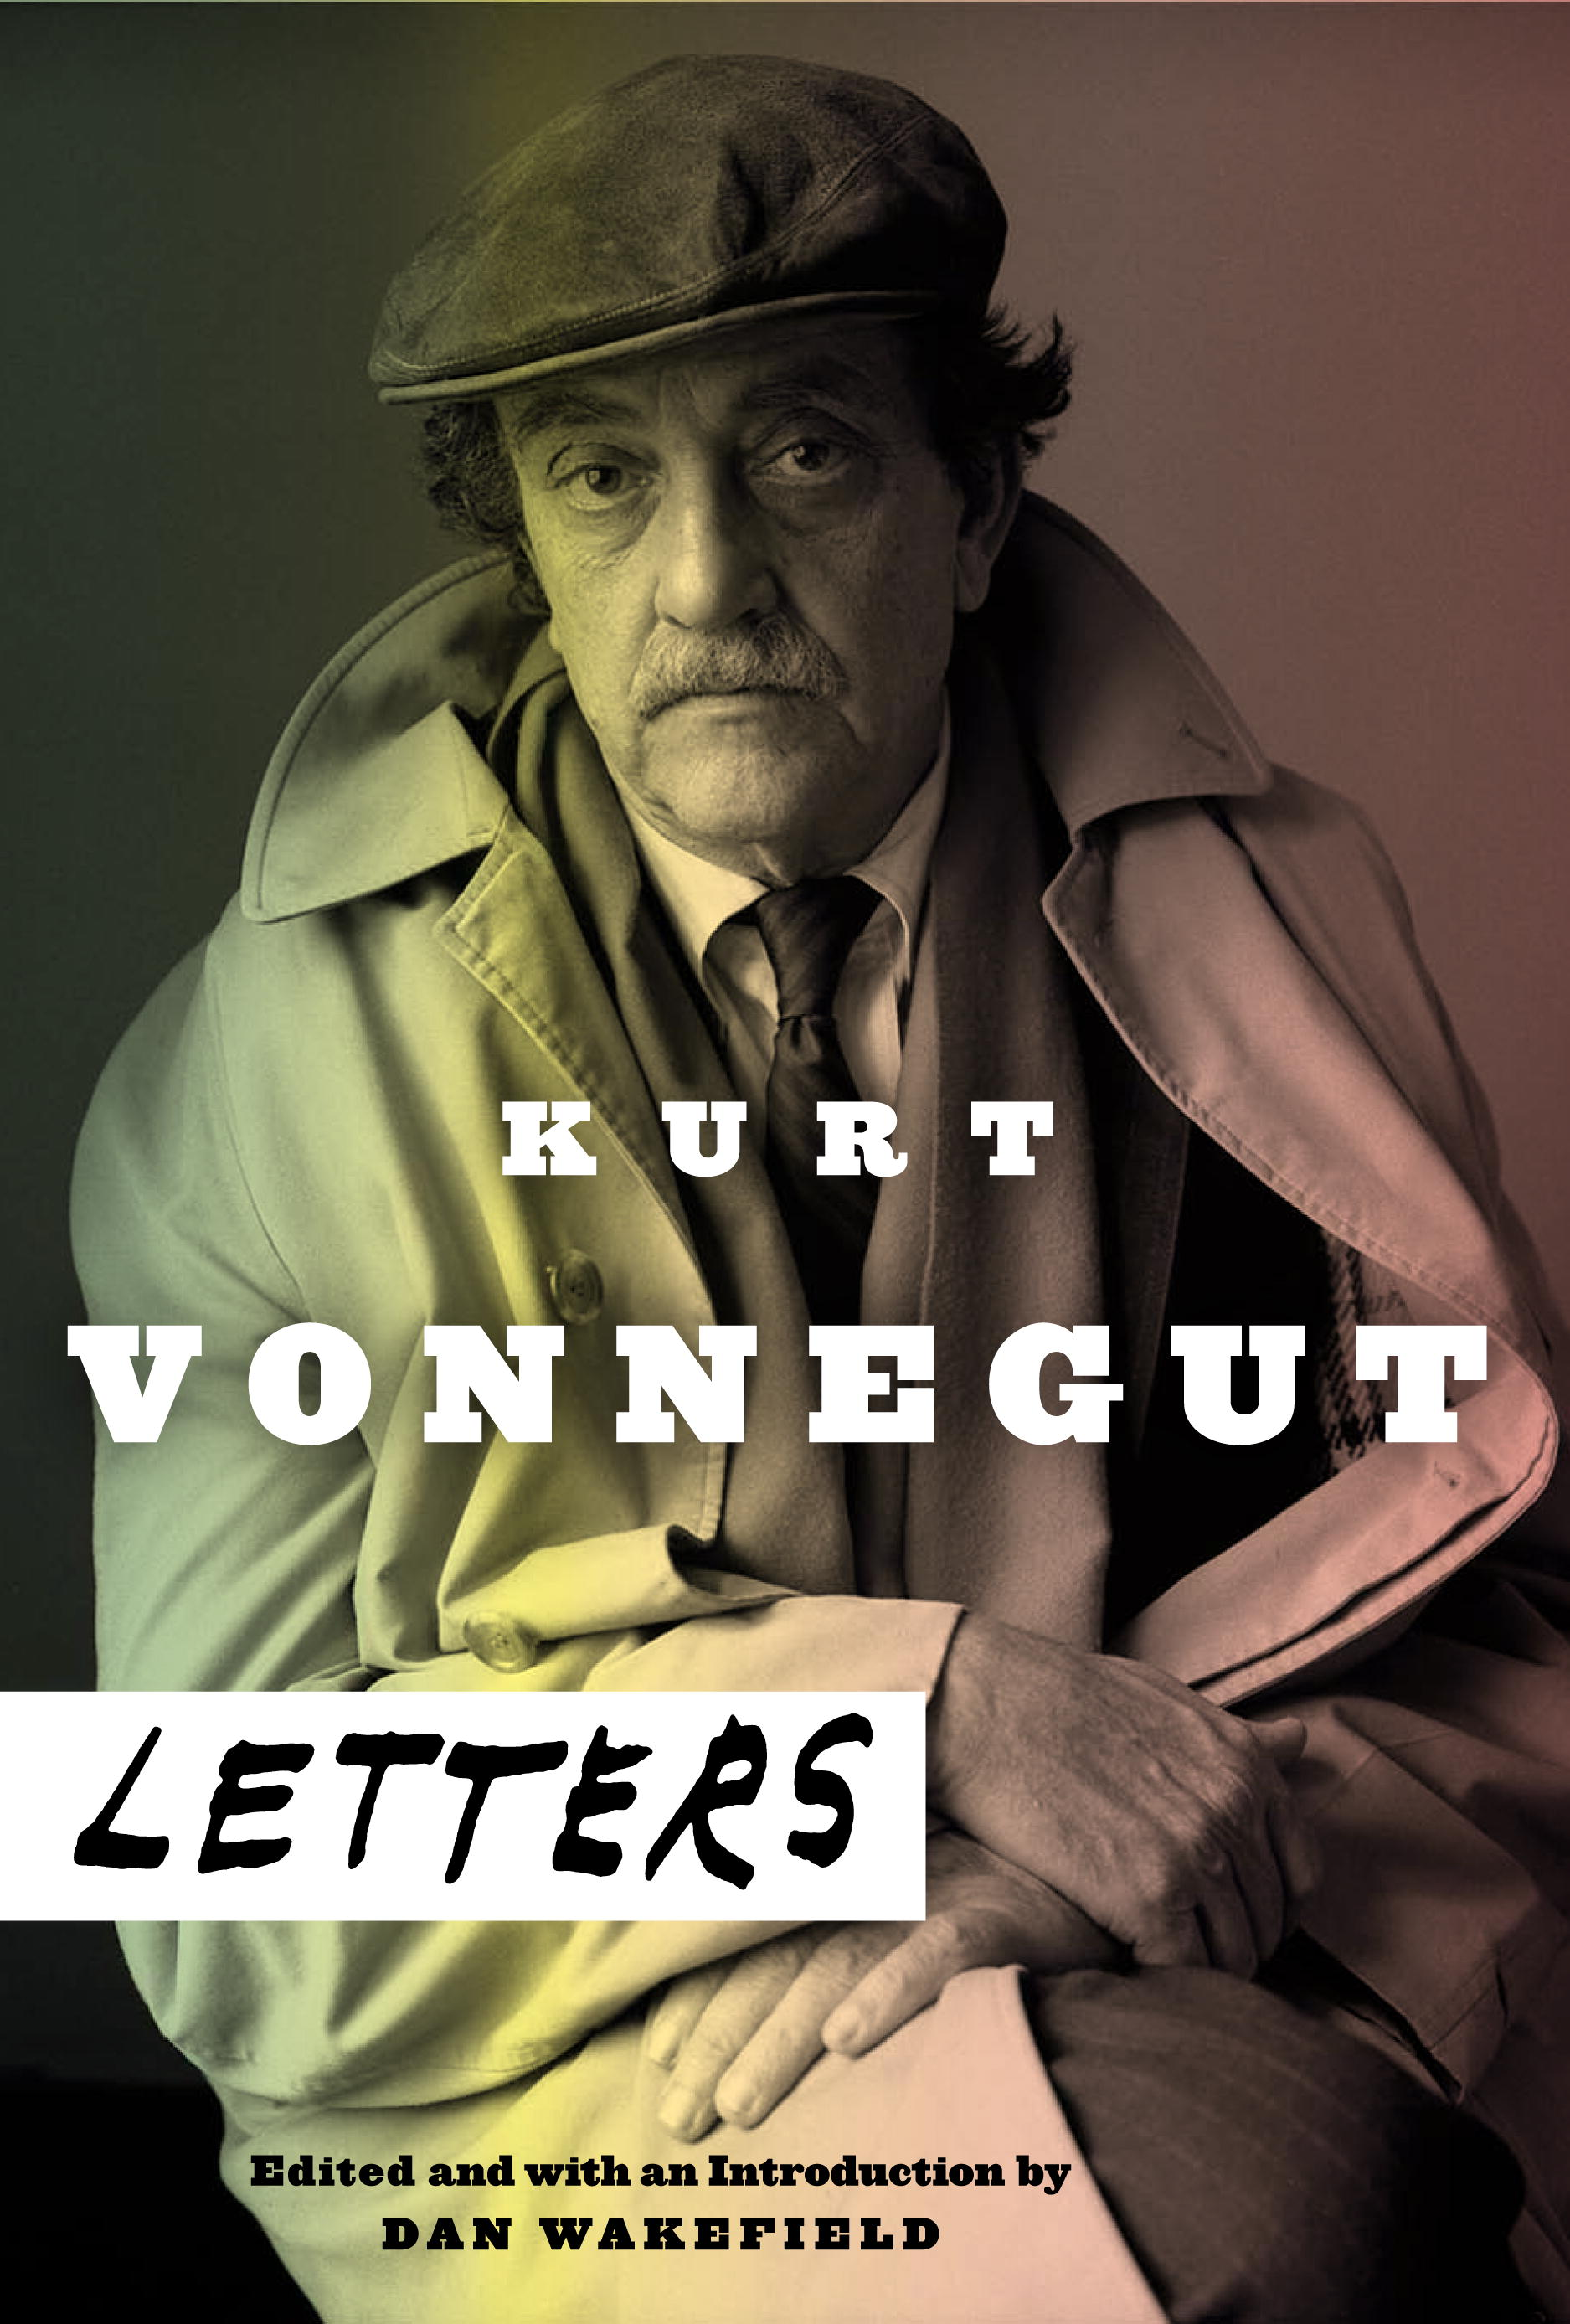 13 ways to live and write like kurt vonnegut